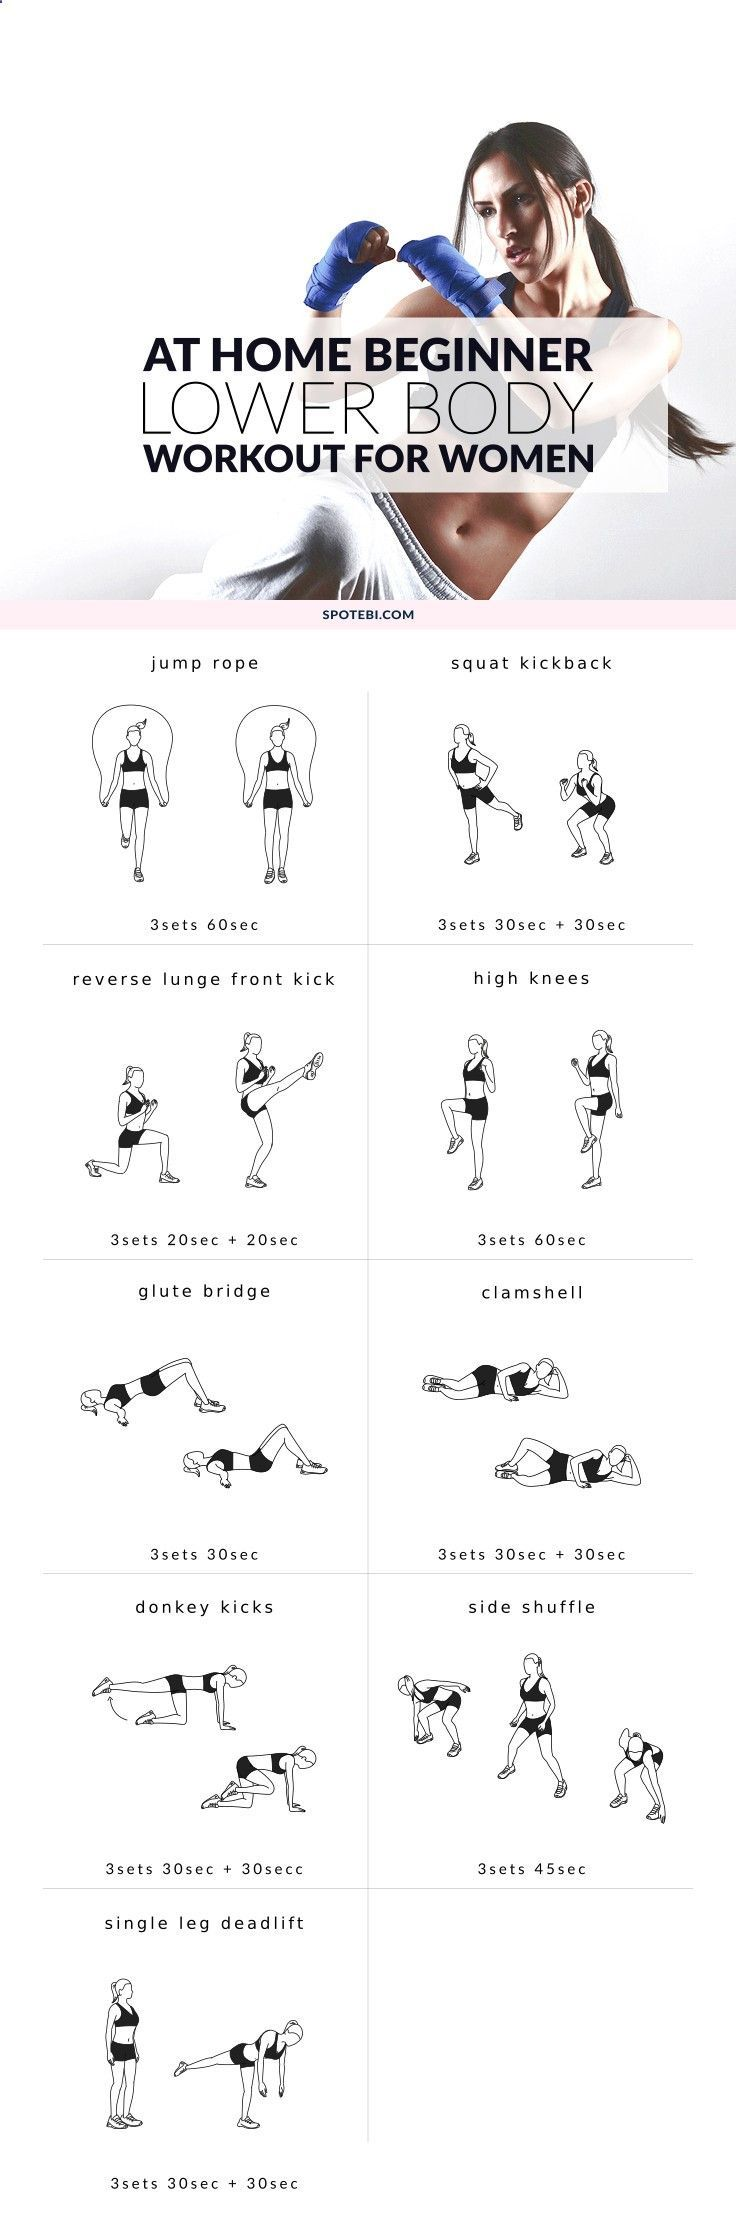 Lift, round and firm your backside with this beginner workout for women. A 25 minute lower body routine to help you sculpt your glutes and trim body fat. www.spotebi.com/...